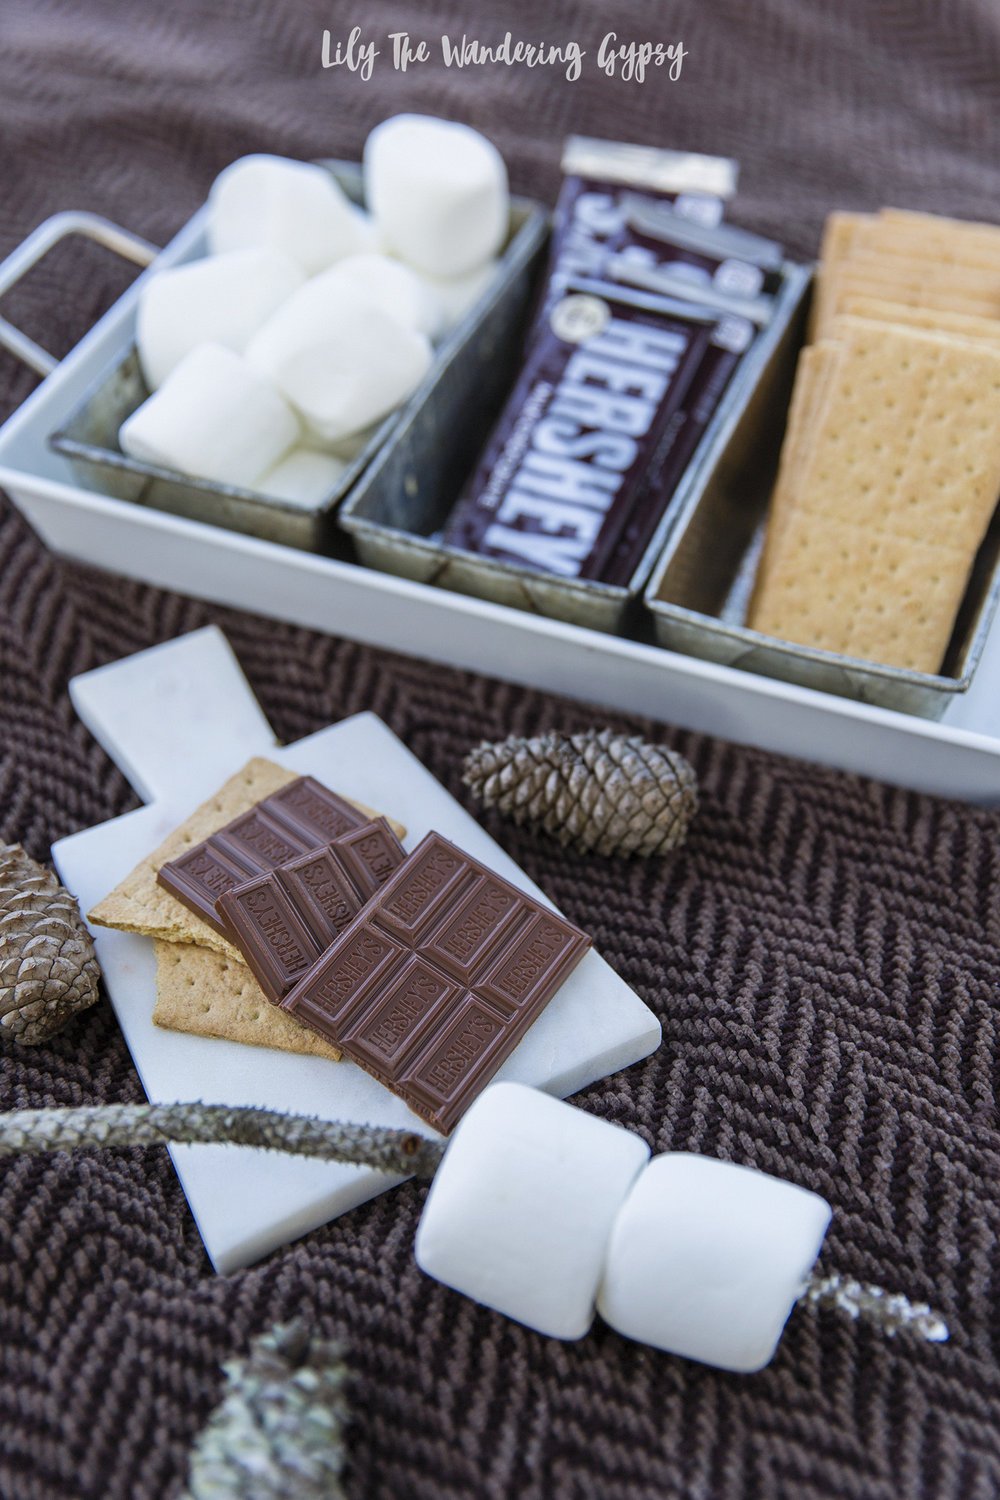 S'mores, Anyone?